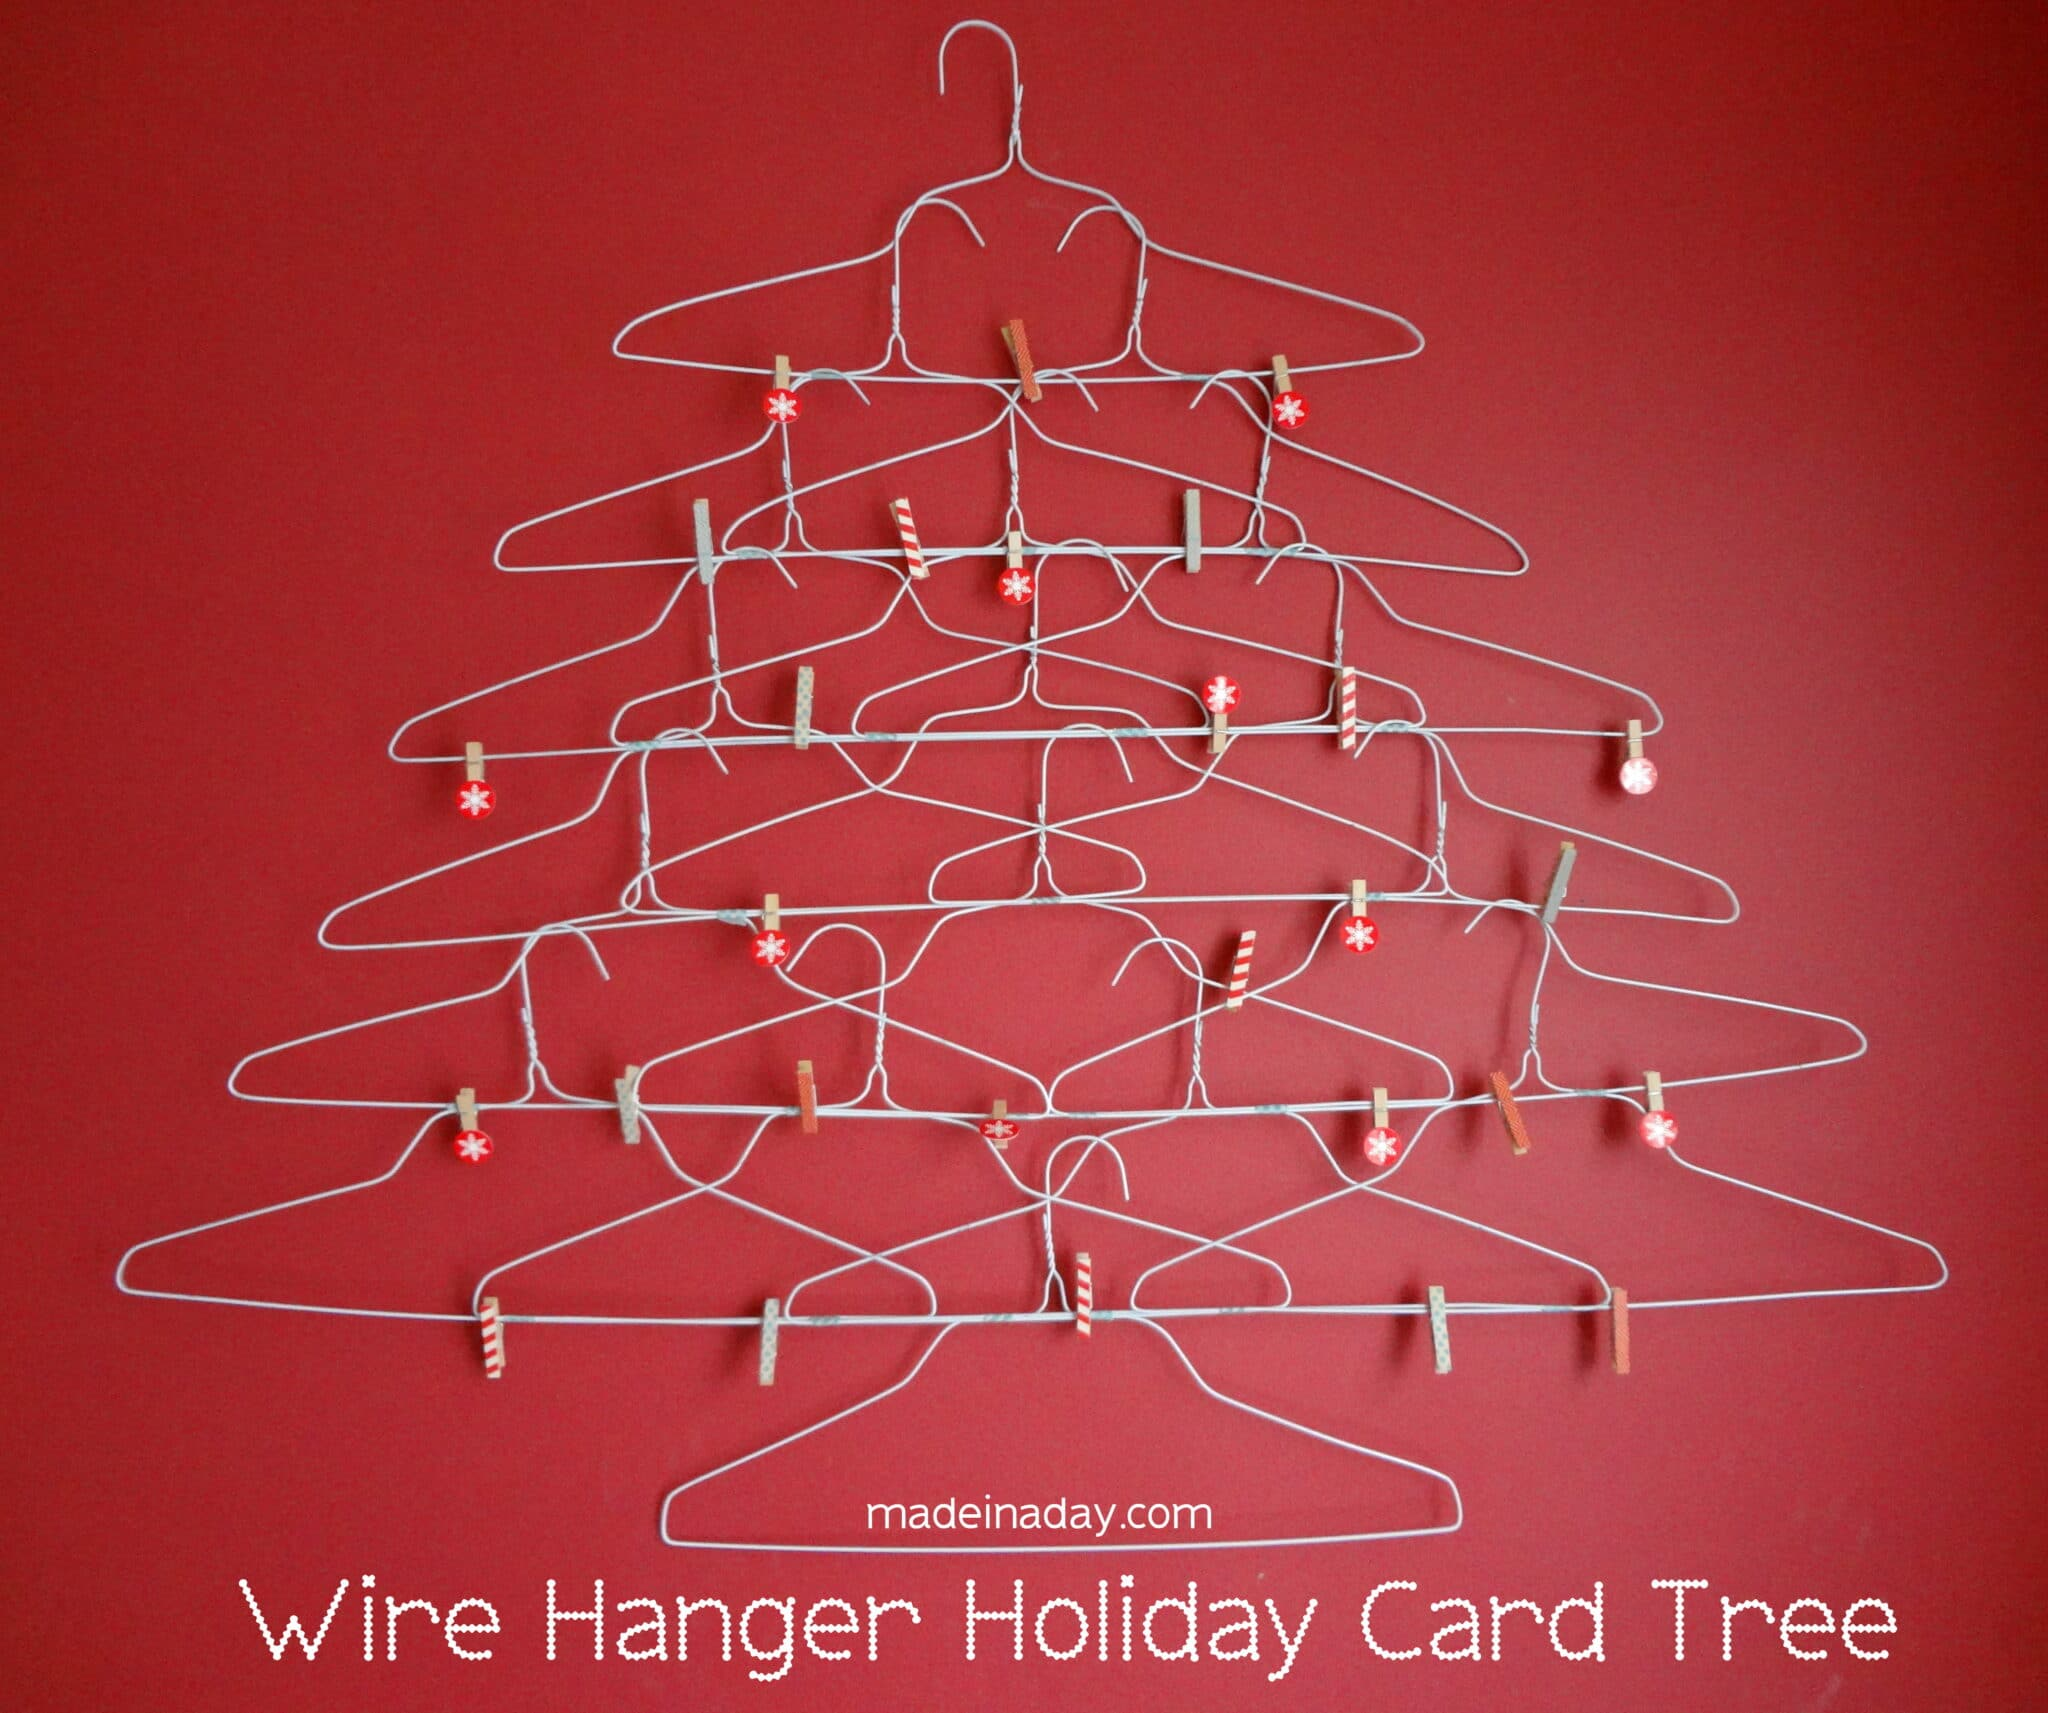 wire hanger holiday card holder - Christmas Card Tree Holder